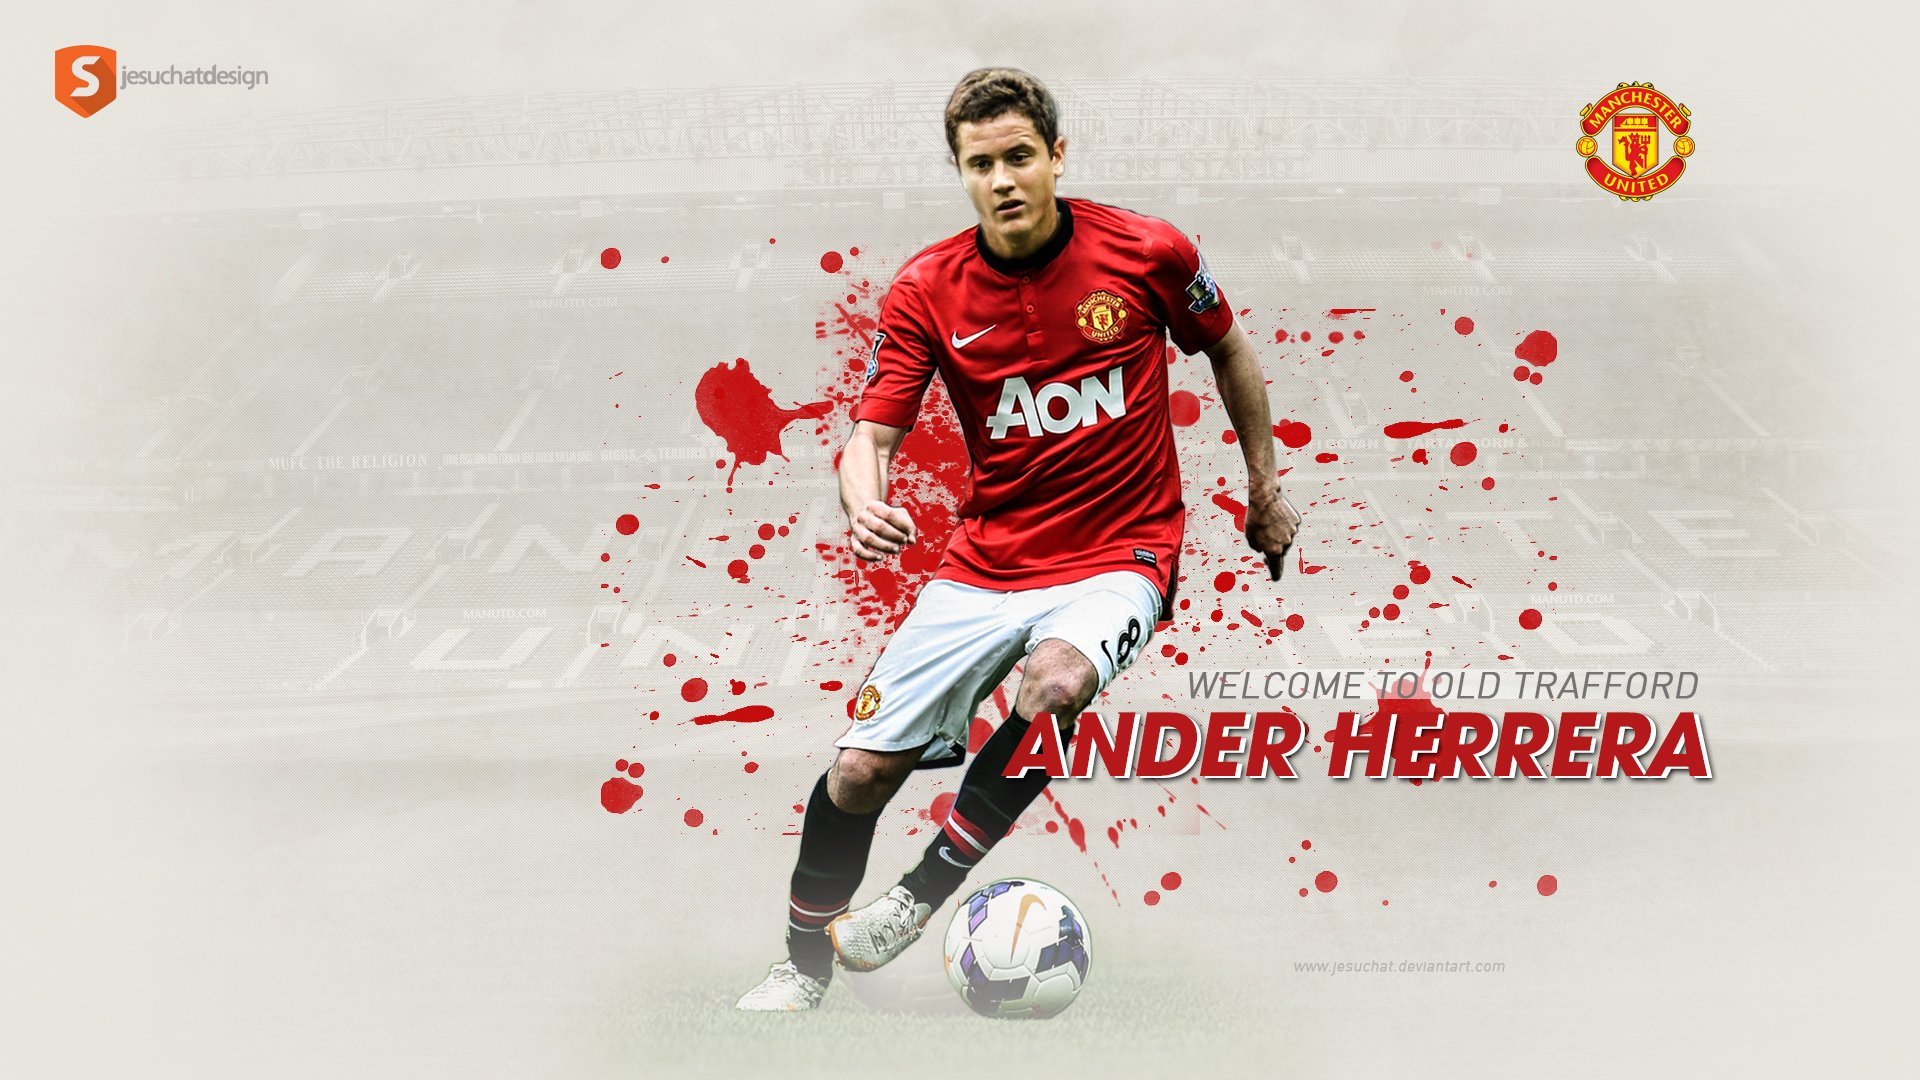 Ander Herrera Wallpaper   Manchester United by Jesuchat on 1920x1080